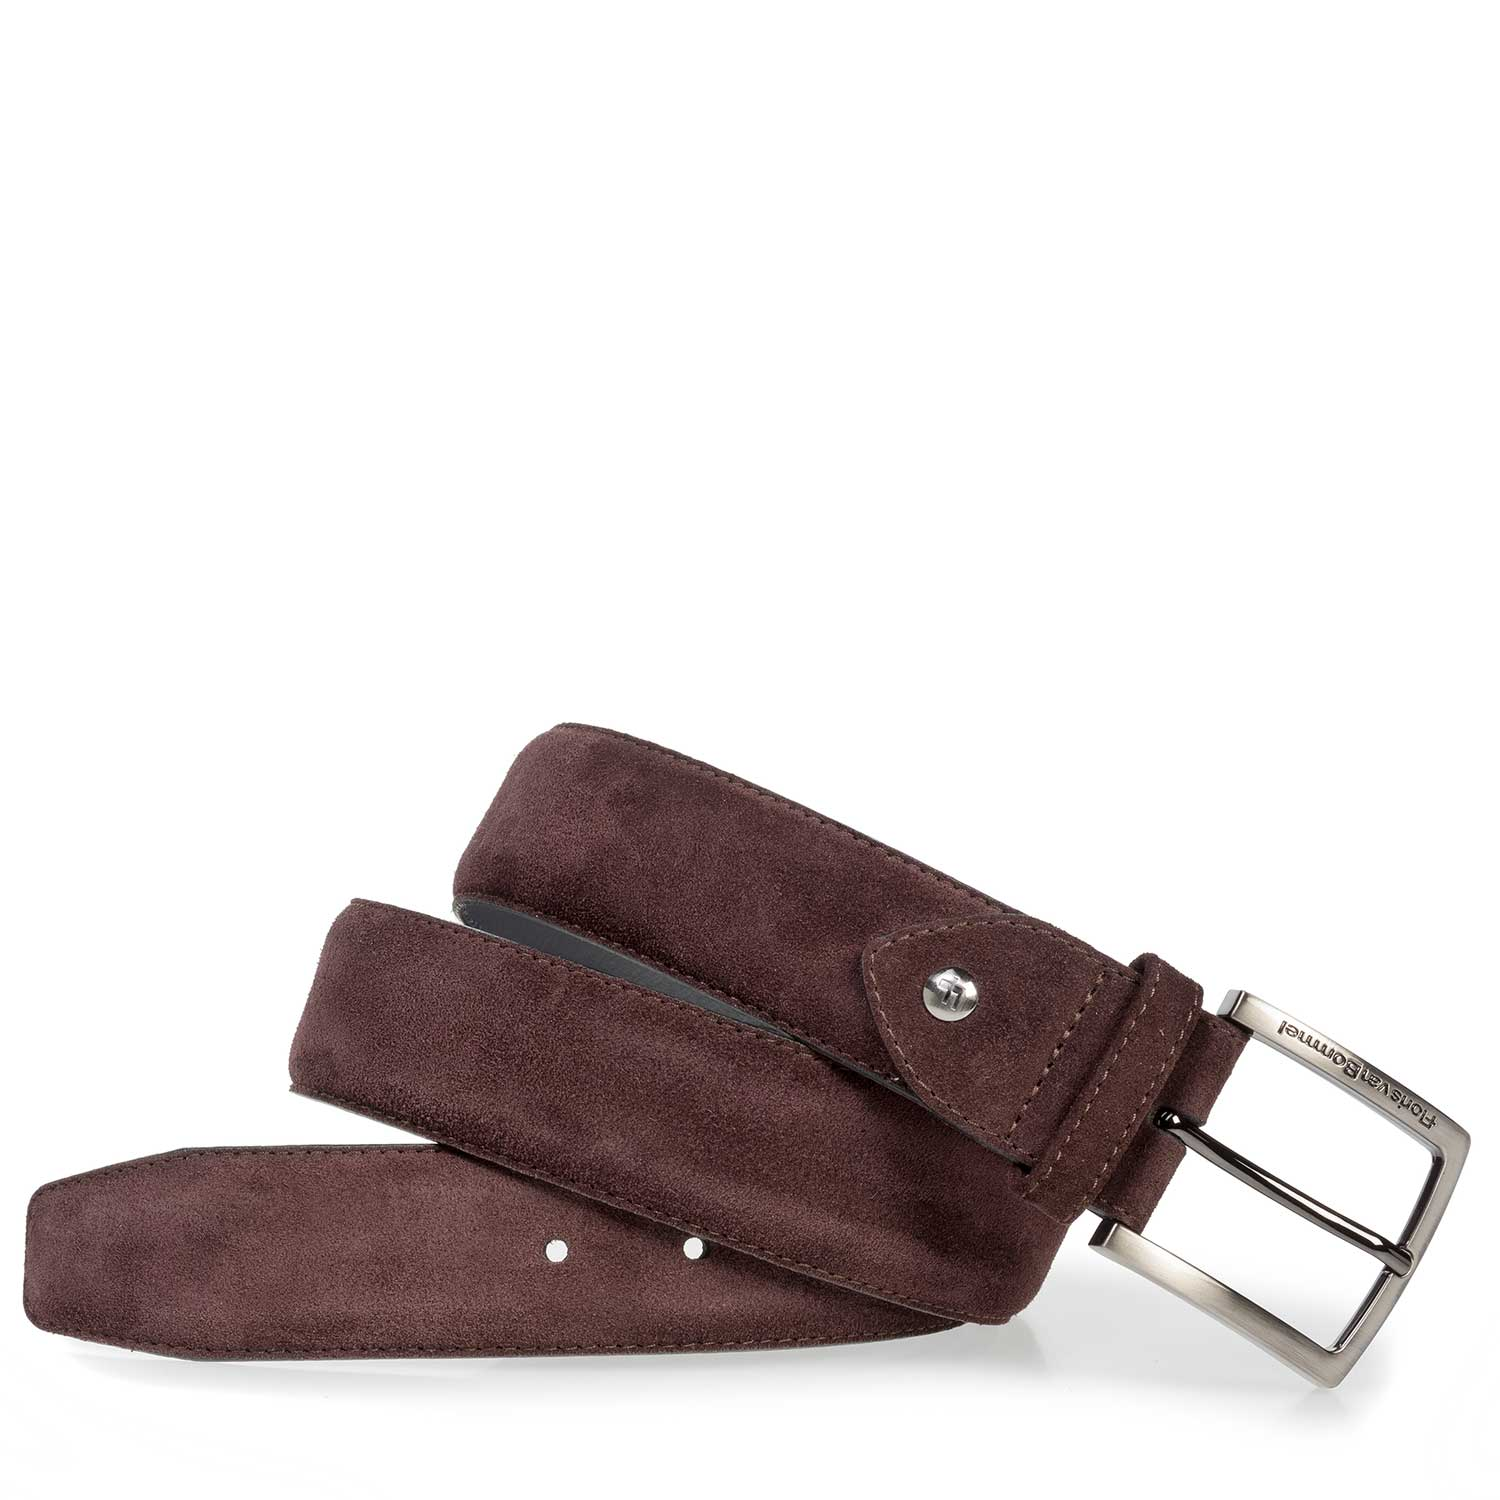 75202/27 - Red suede leather belt